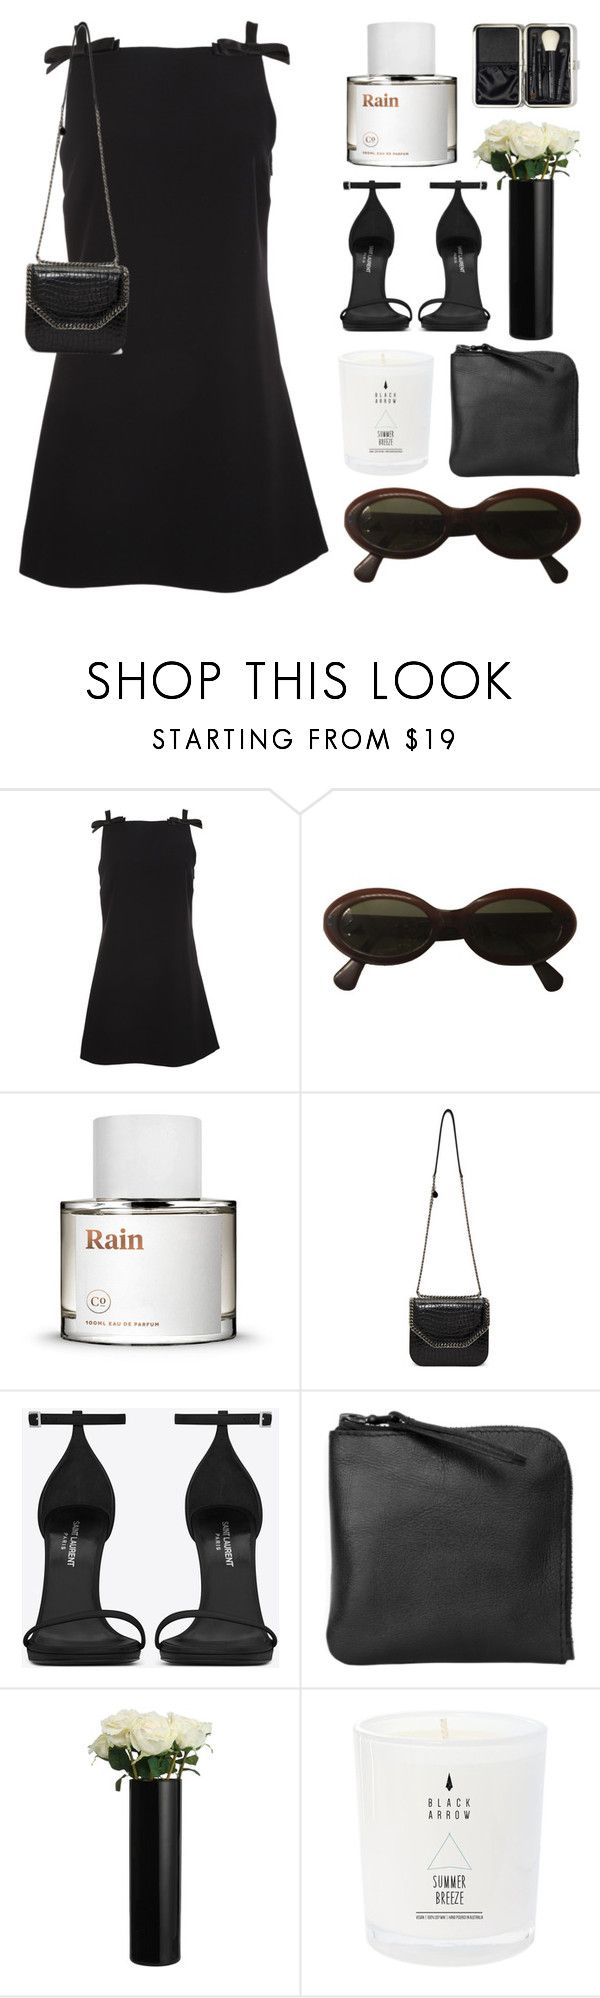 """Black + White"" by its-ishani ❤ liked on Polyvore featuring Miu Miu, Moschino, STELLA McCARTNEY, Yves Saint Laurent, Xenab Lone, John Lewis, Bobbi Brown Cosmetics, YSL, blackandwhite and StellaMcCartney"